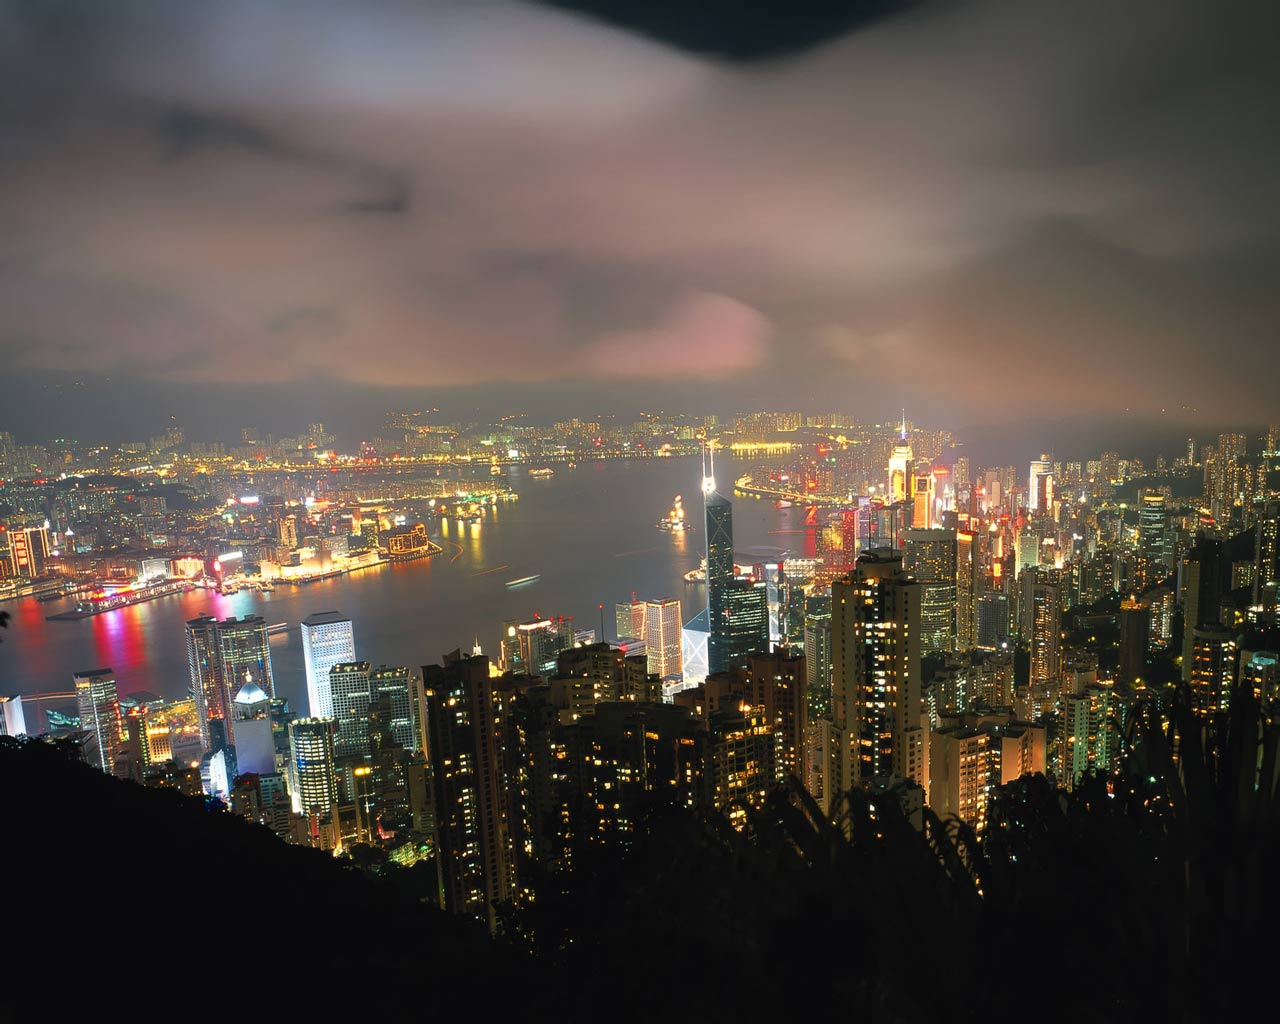 Windows XP HD Wallpapers: Hong Kong Night view HD Wallpaper